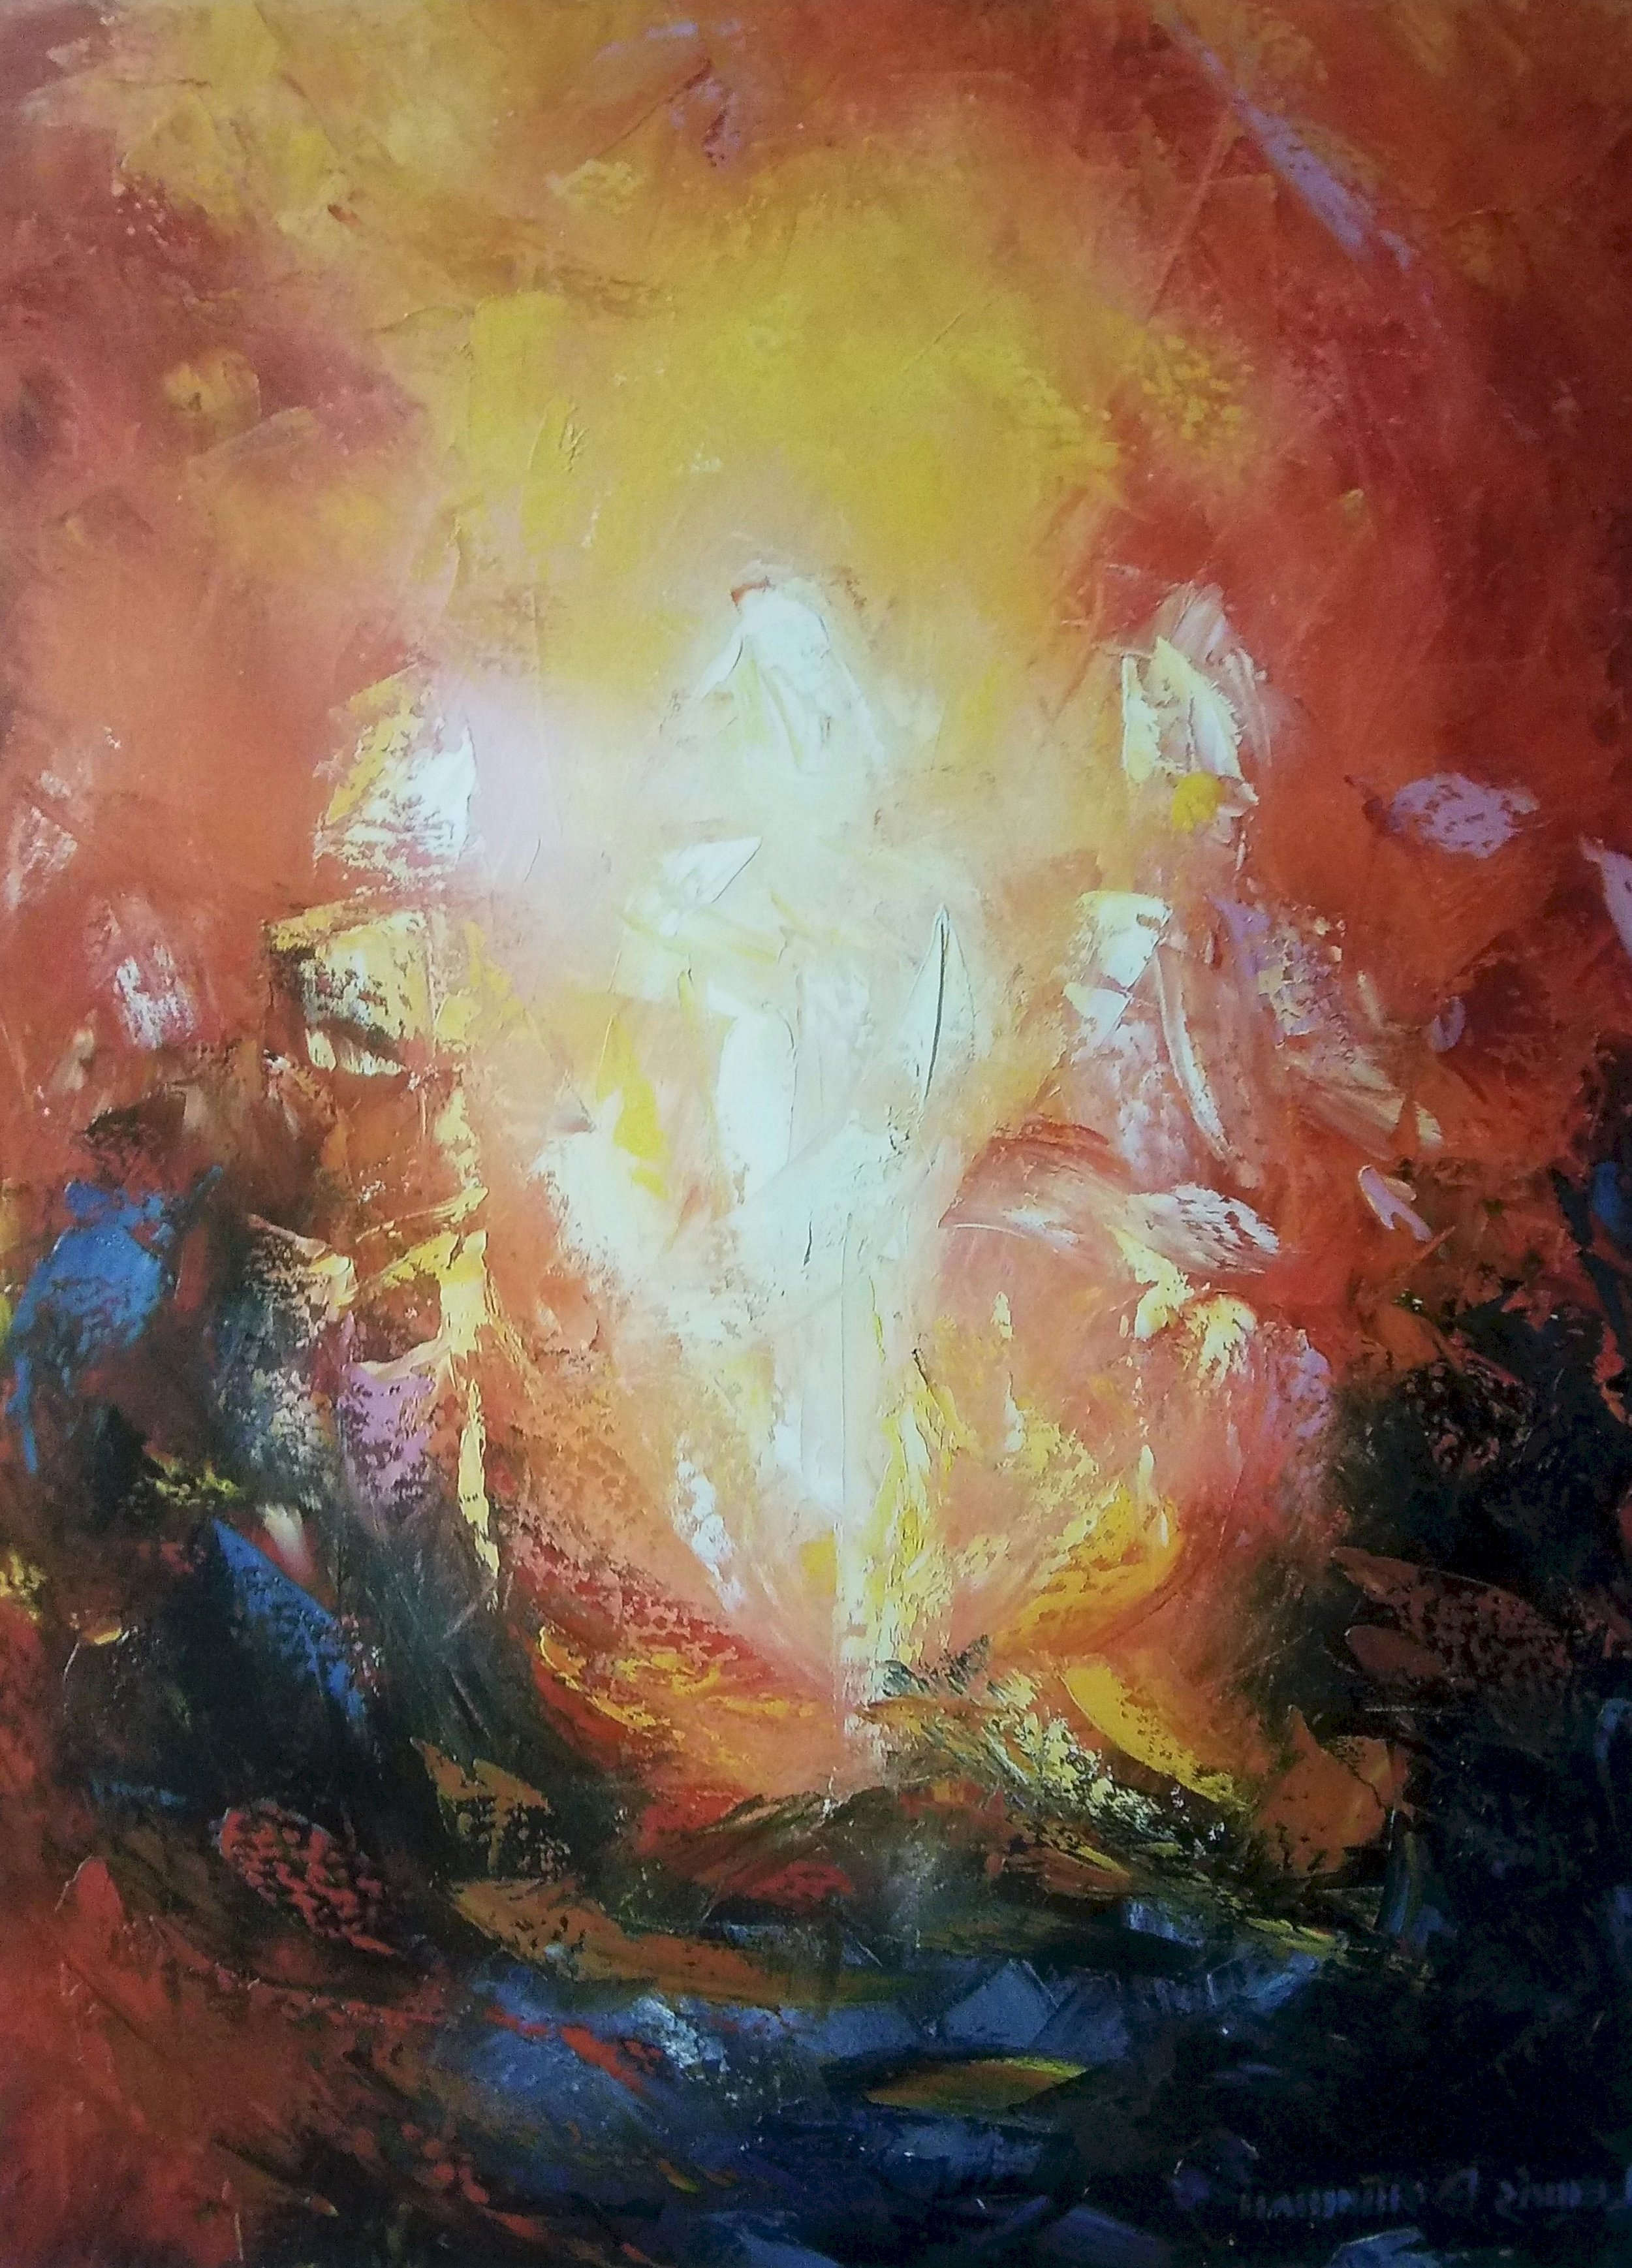 Transfiguration by Lewis Bowman